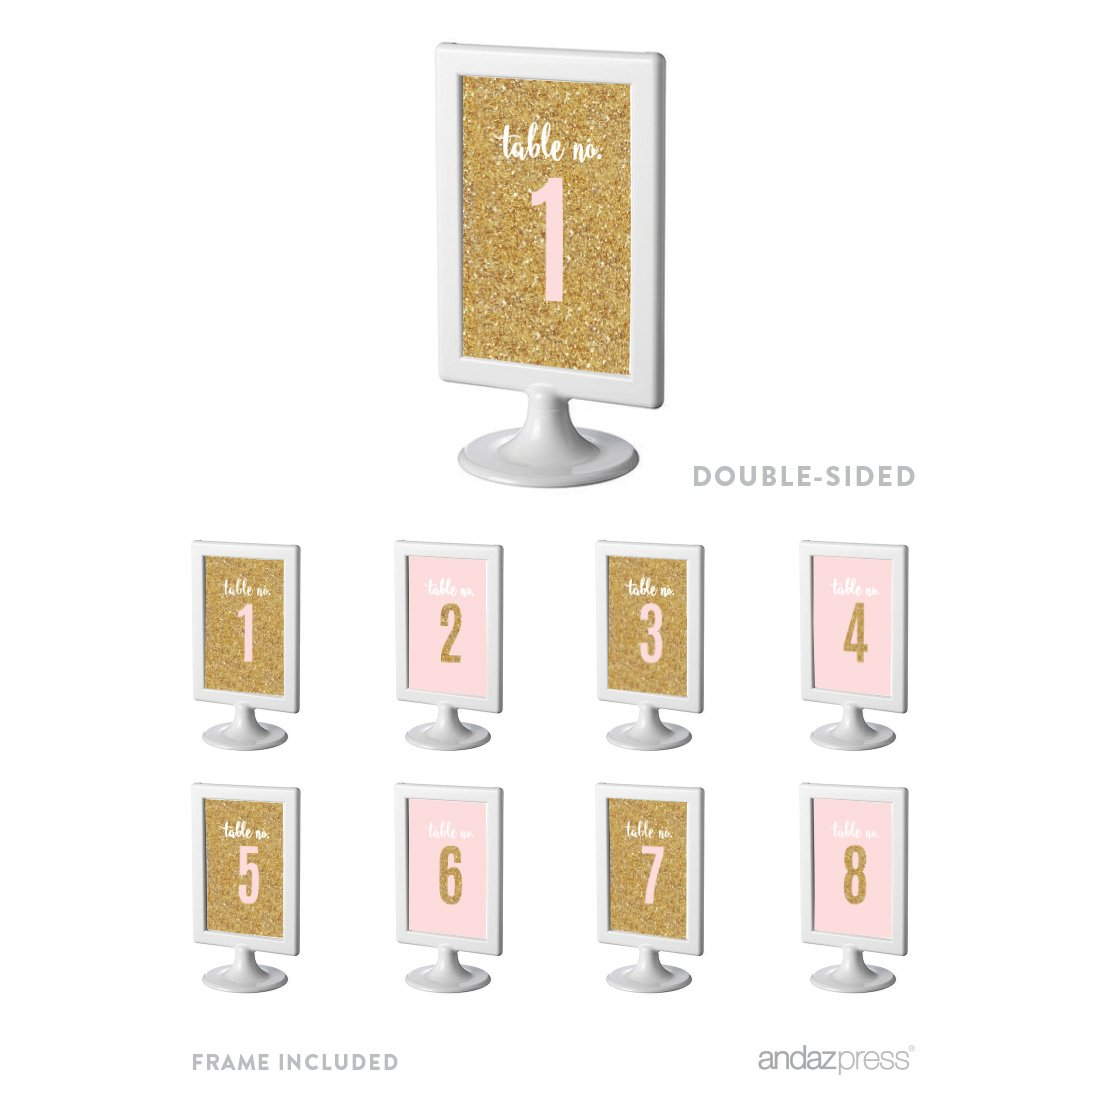 Andaz Press Signature Blush Pink, White, Gold Glitter Party Collection, Framed Table Numbers 1-8, Double-Sided, 4x6-inch, 1-Set